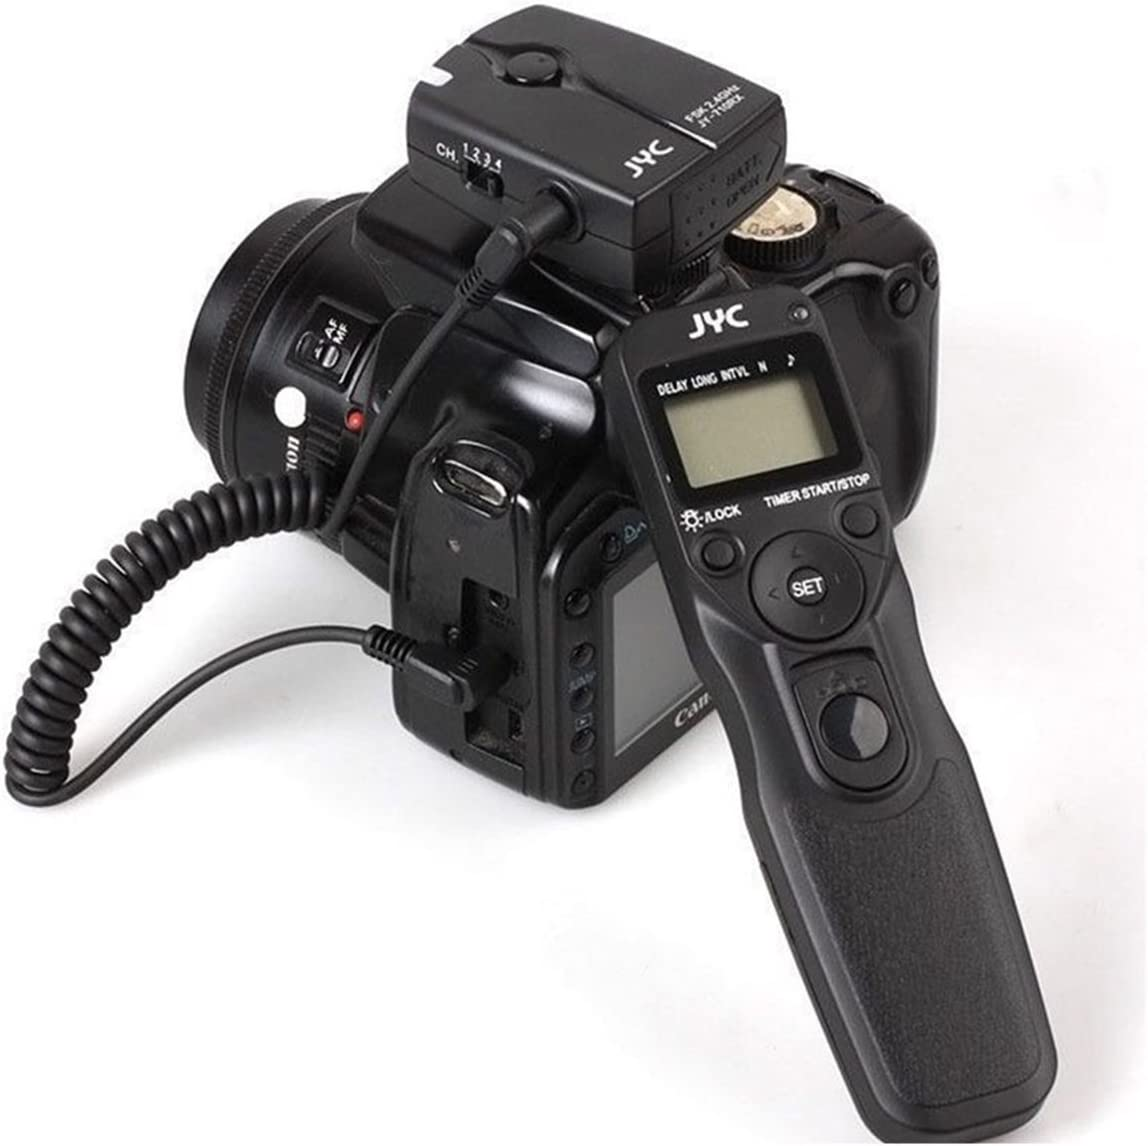 7D C3 Cable,for Canon 6D 5D II MC-C3 5DS R 7D 5D III 5DS RS-80N3 LCD delay Spacer with Remote Control